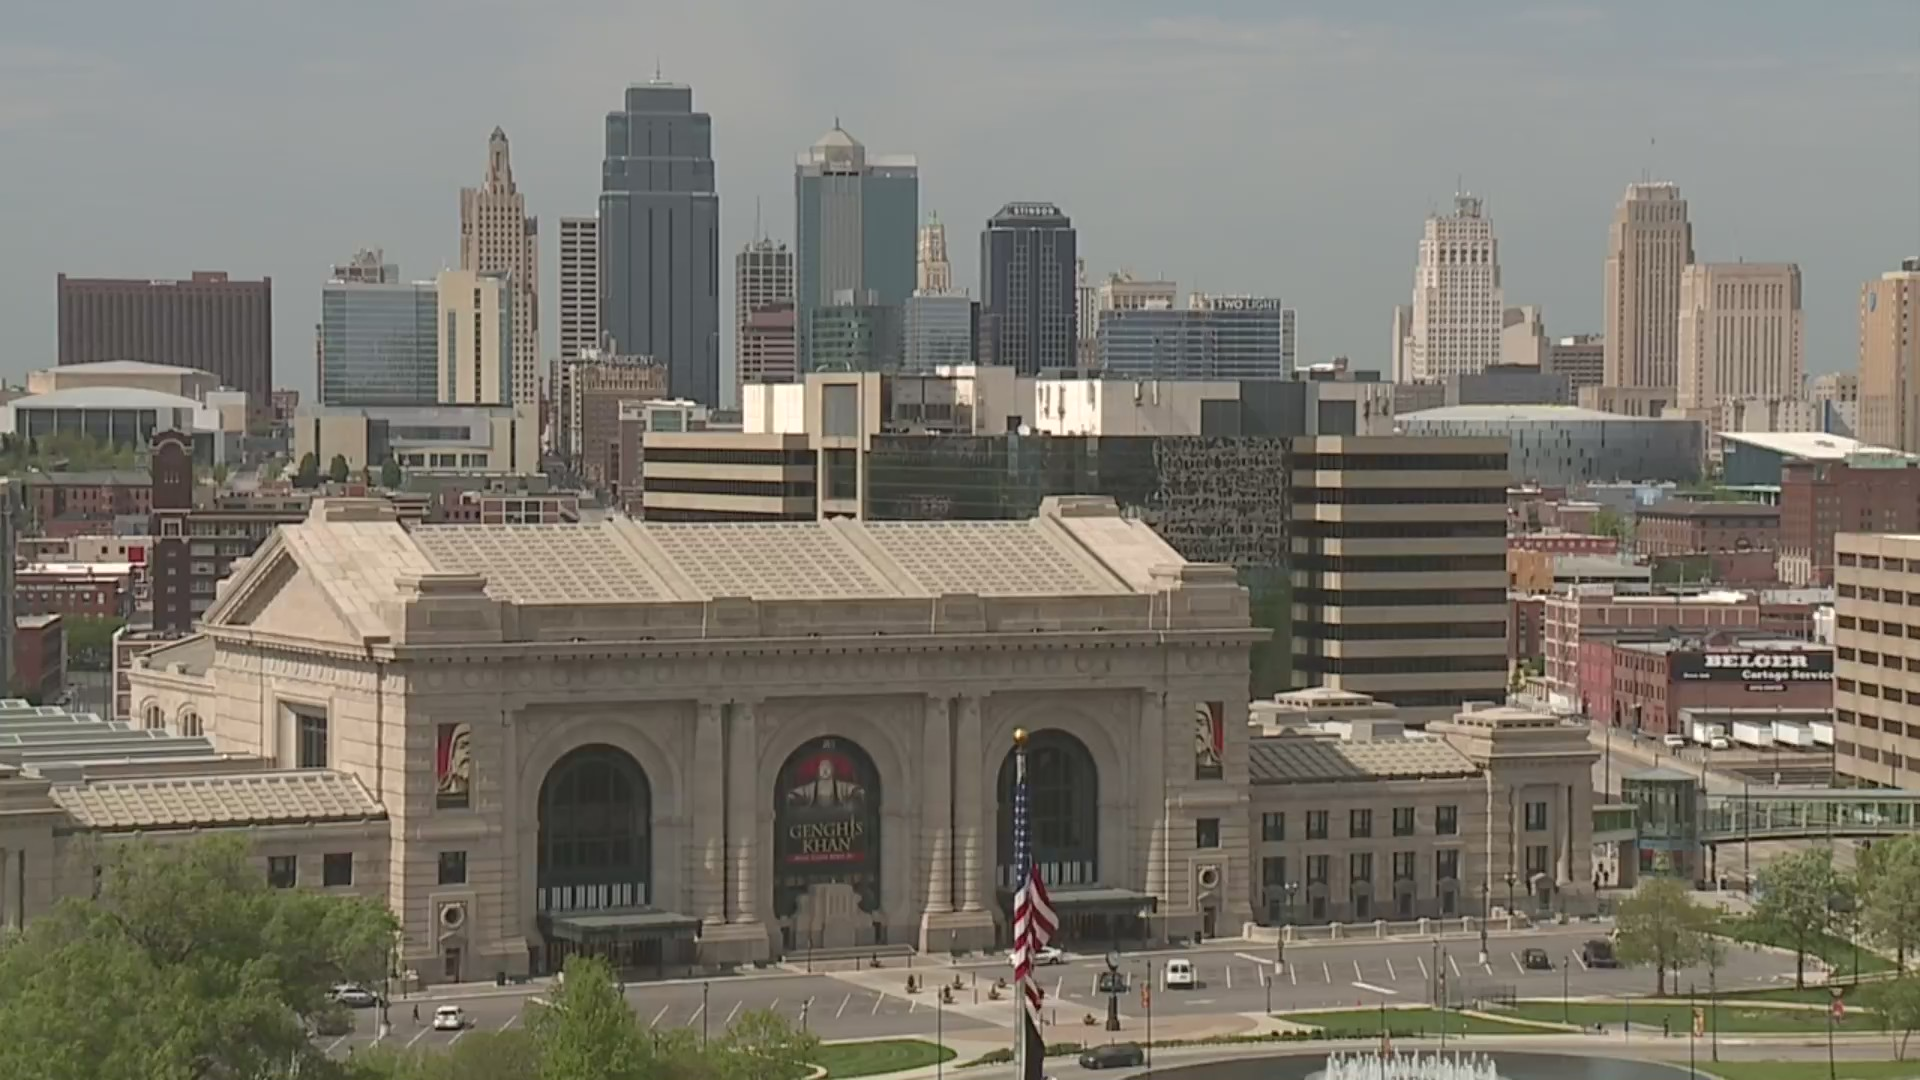 Picture of Union Station with skyline in background